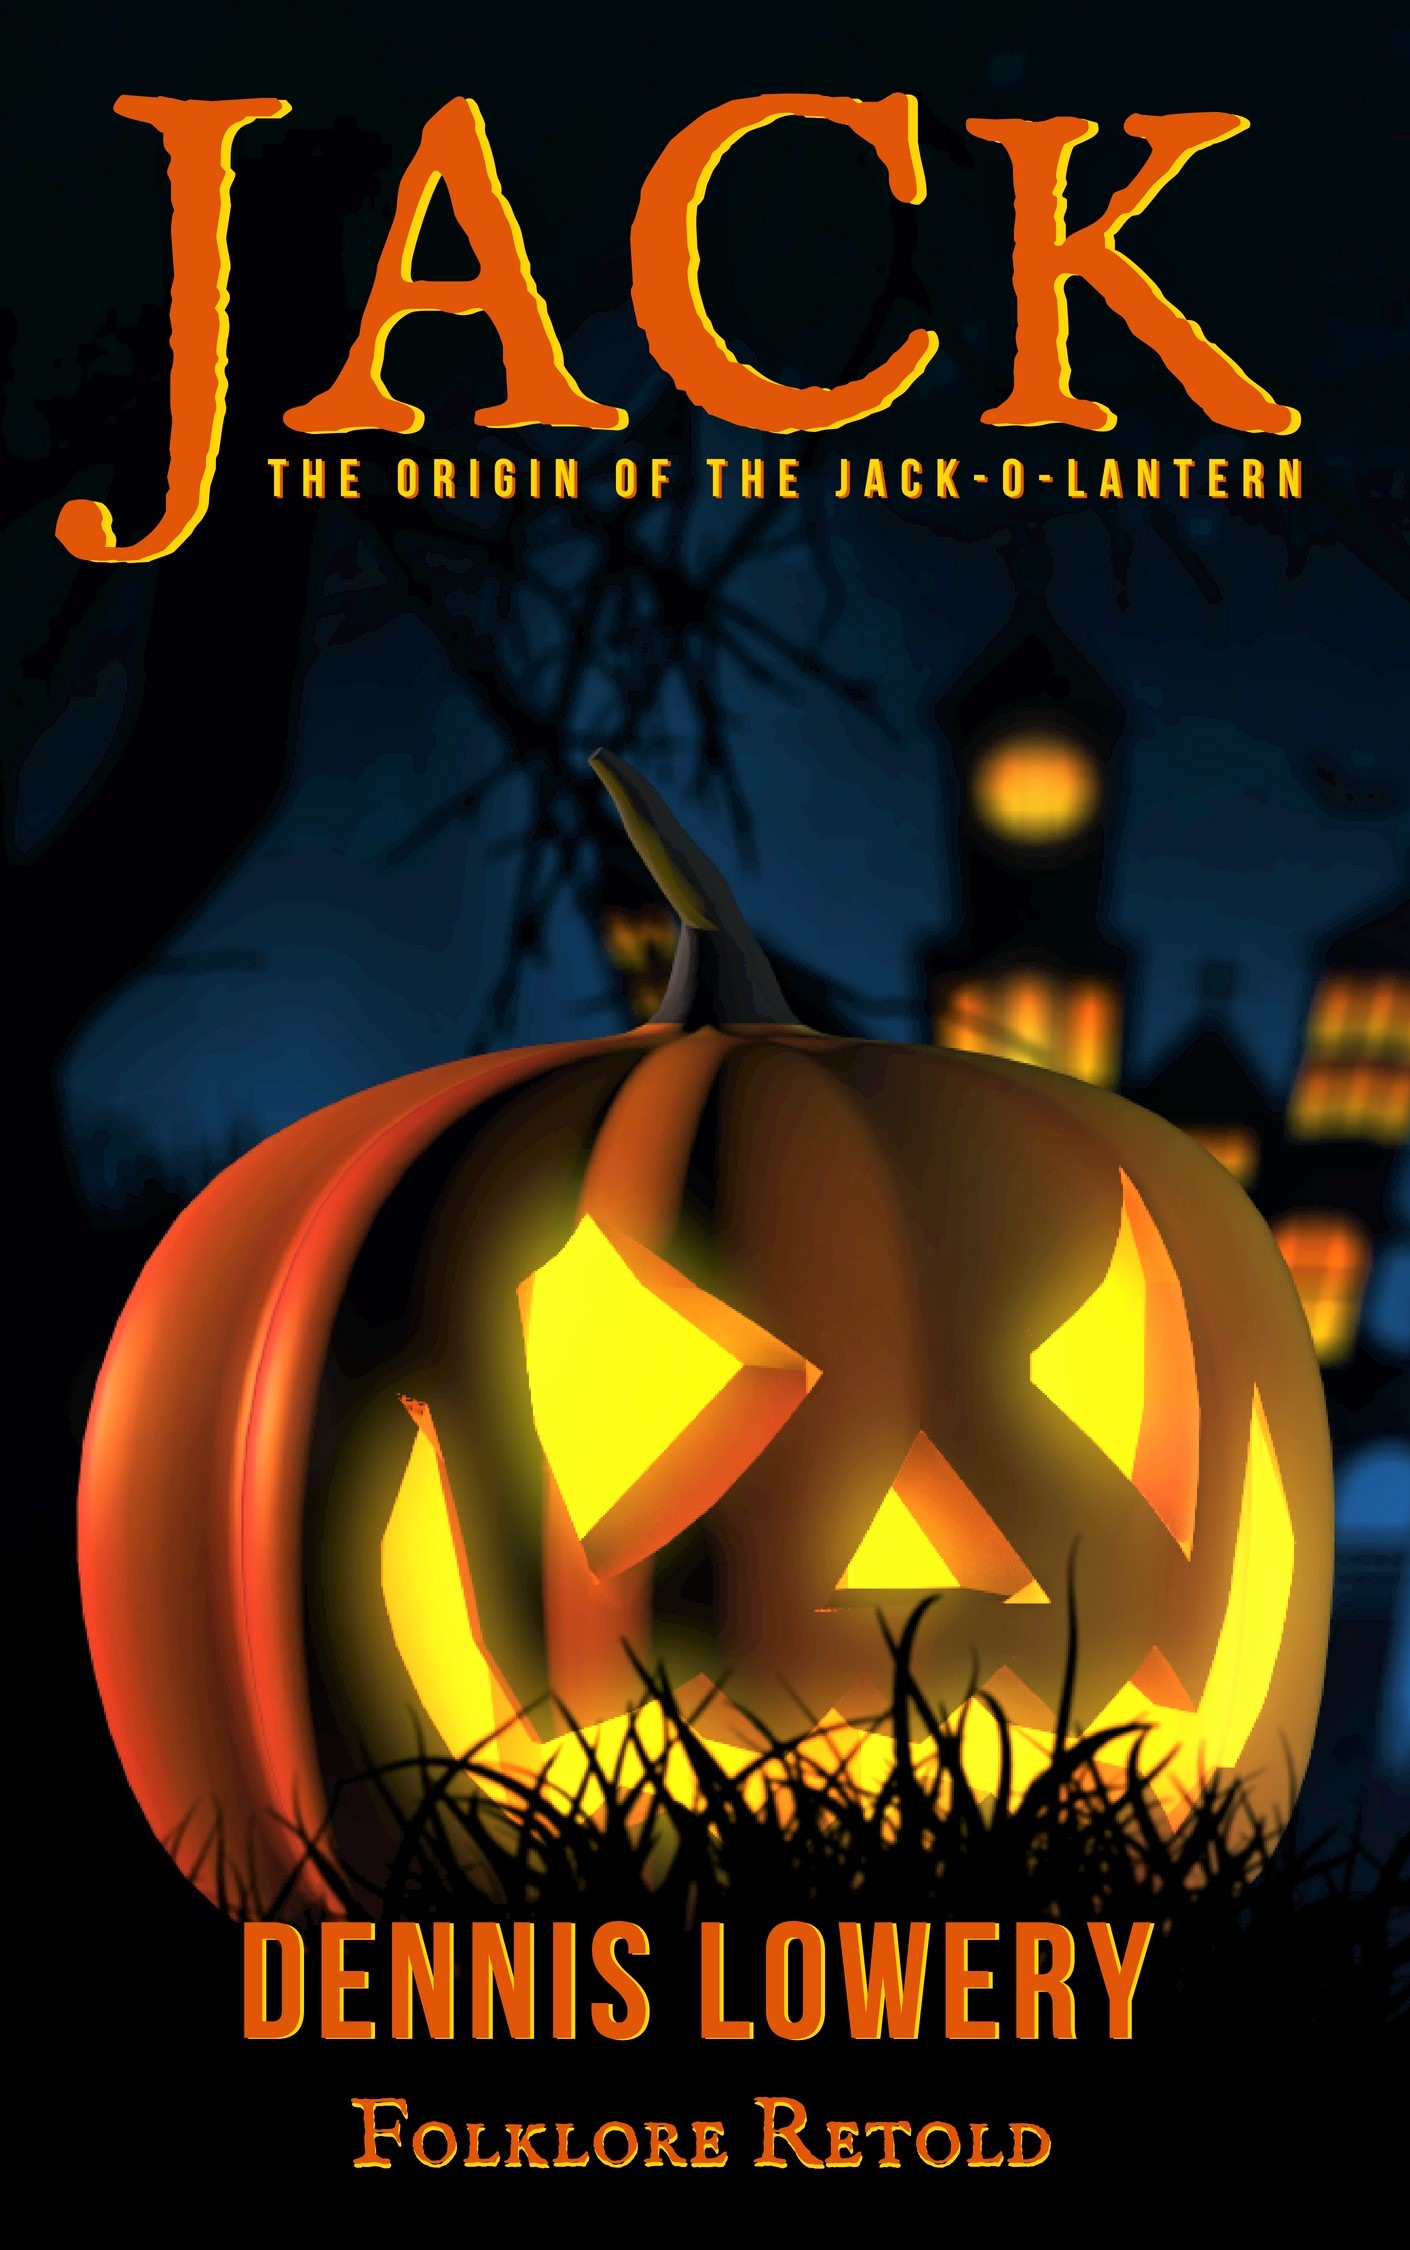 JACK The Origin of the Jack-O-Lantern Folklore Retold by Dennis Lowery